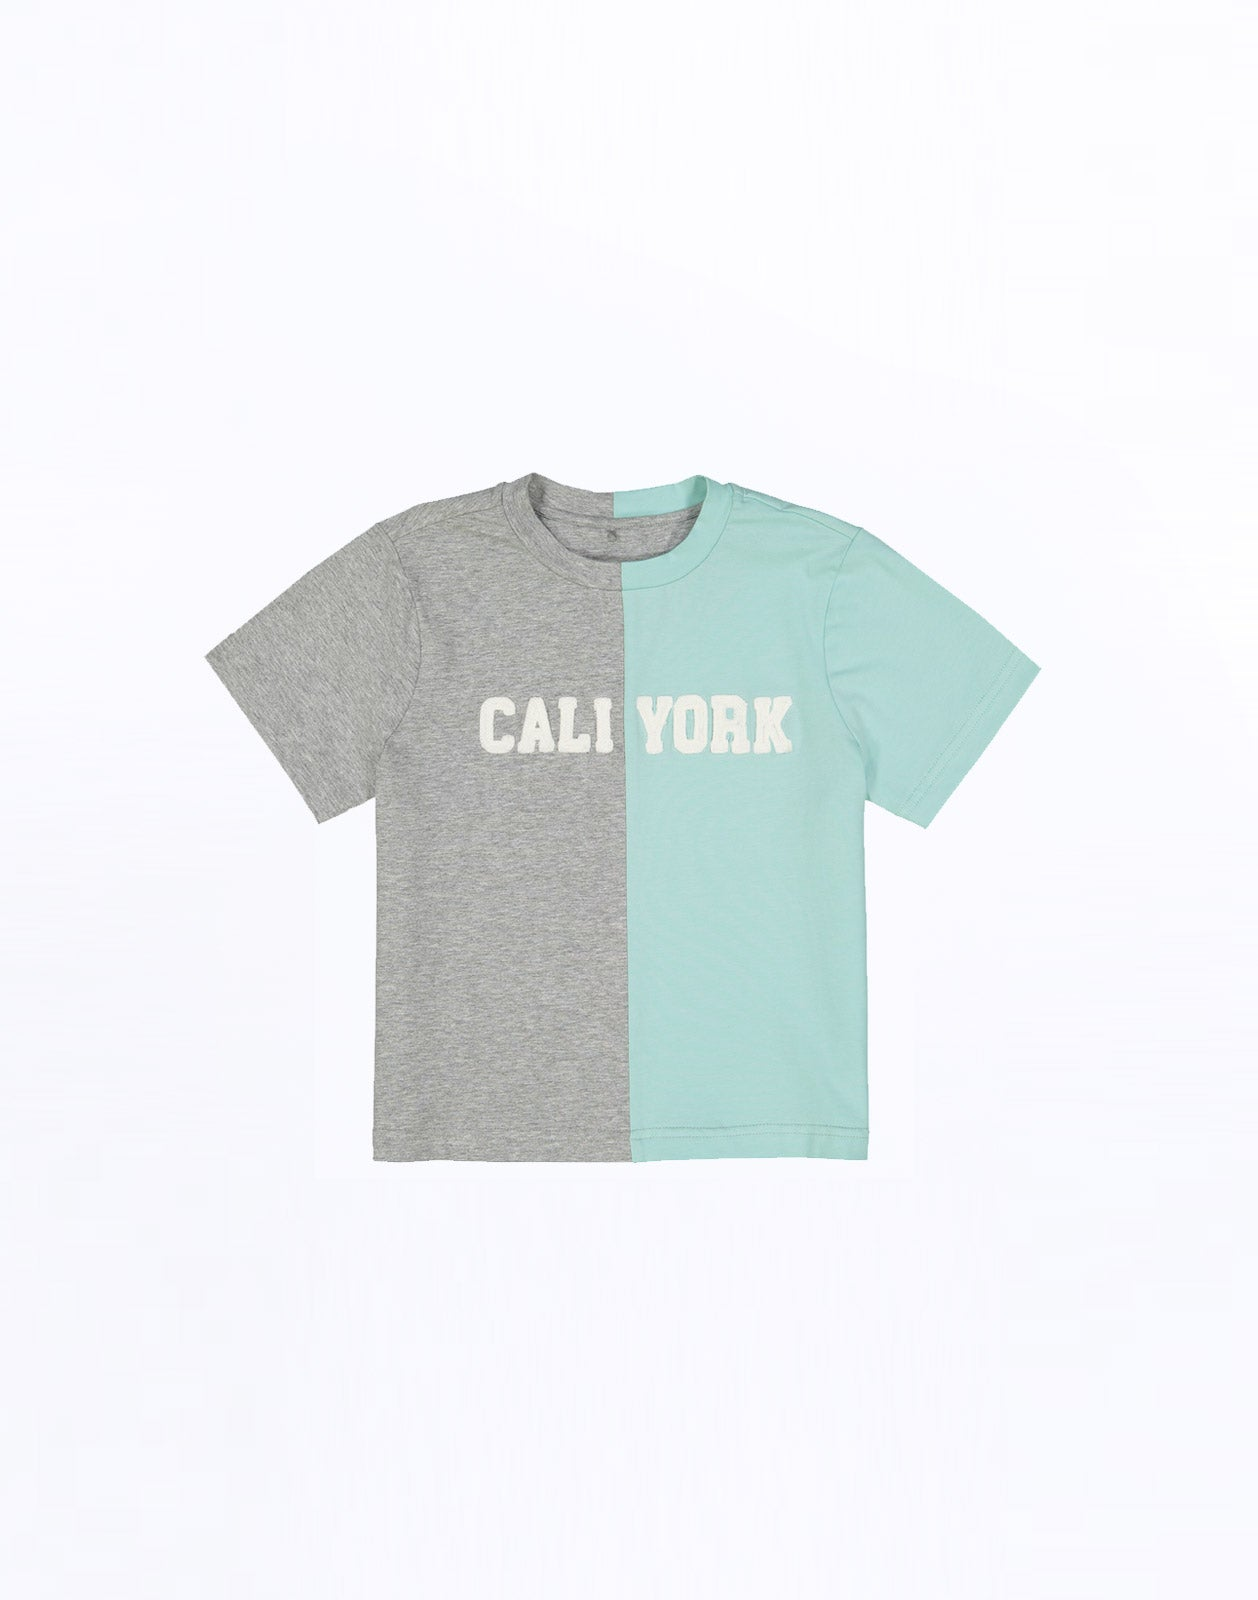 Kid's CaliYork in tee in half grey, half mint.